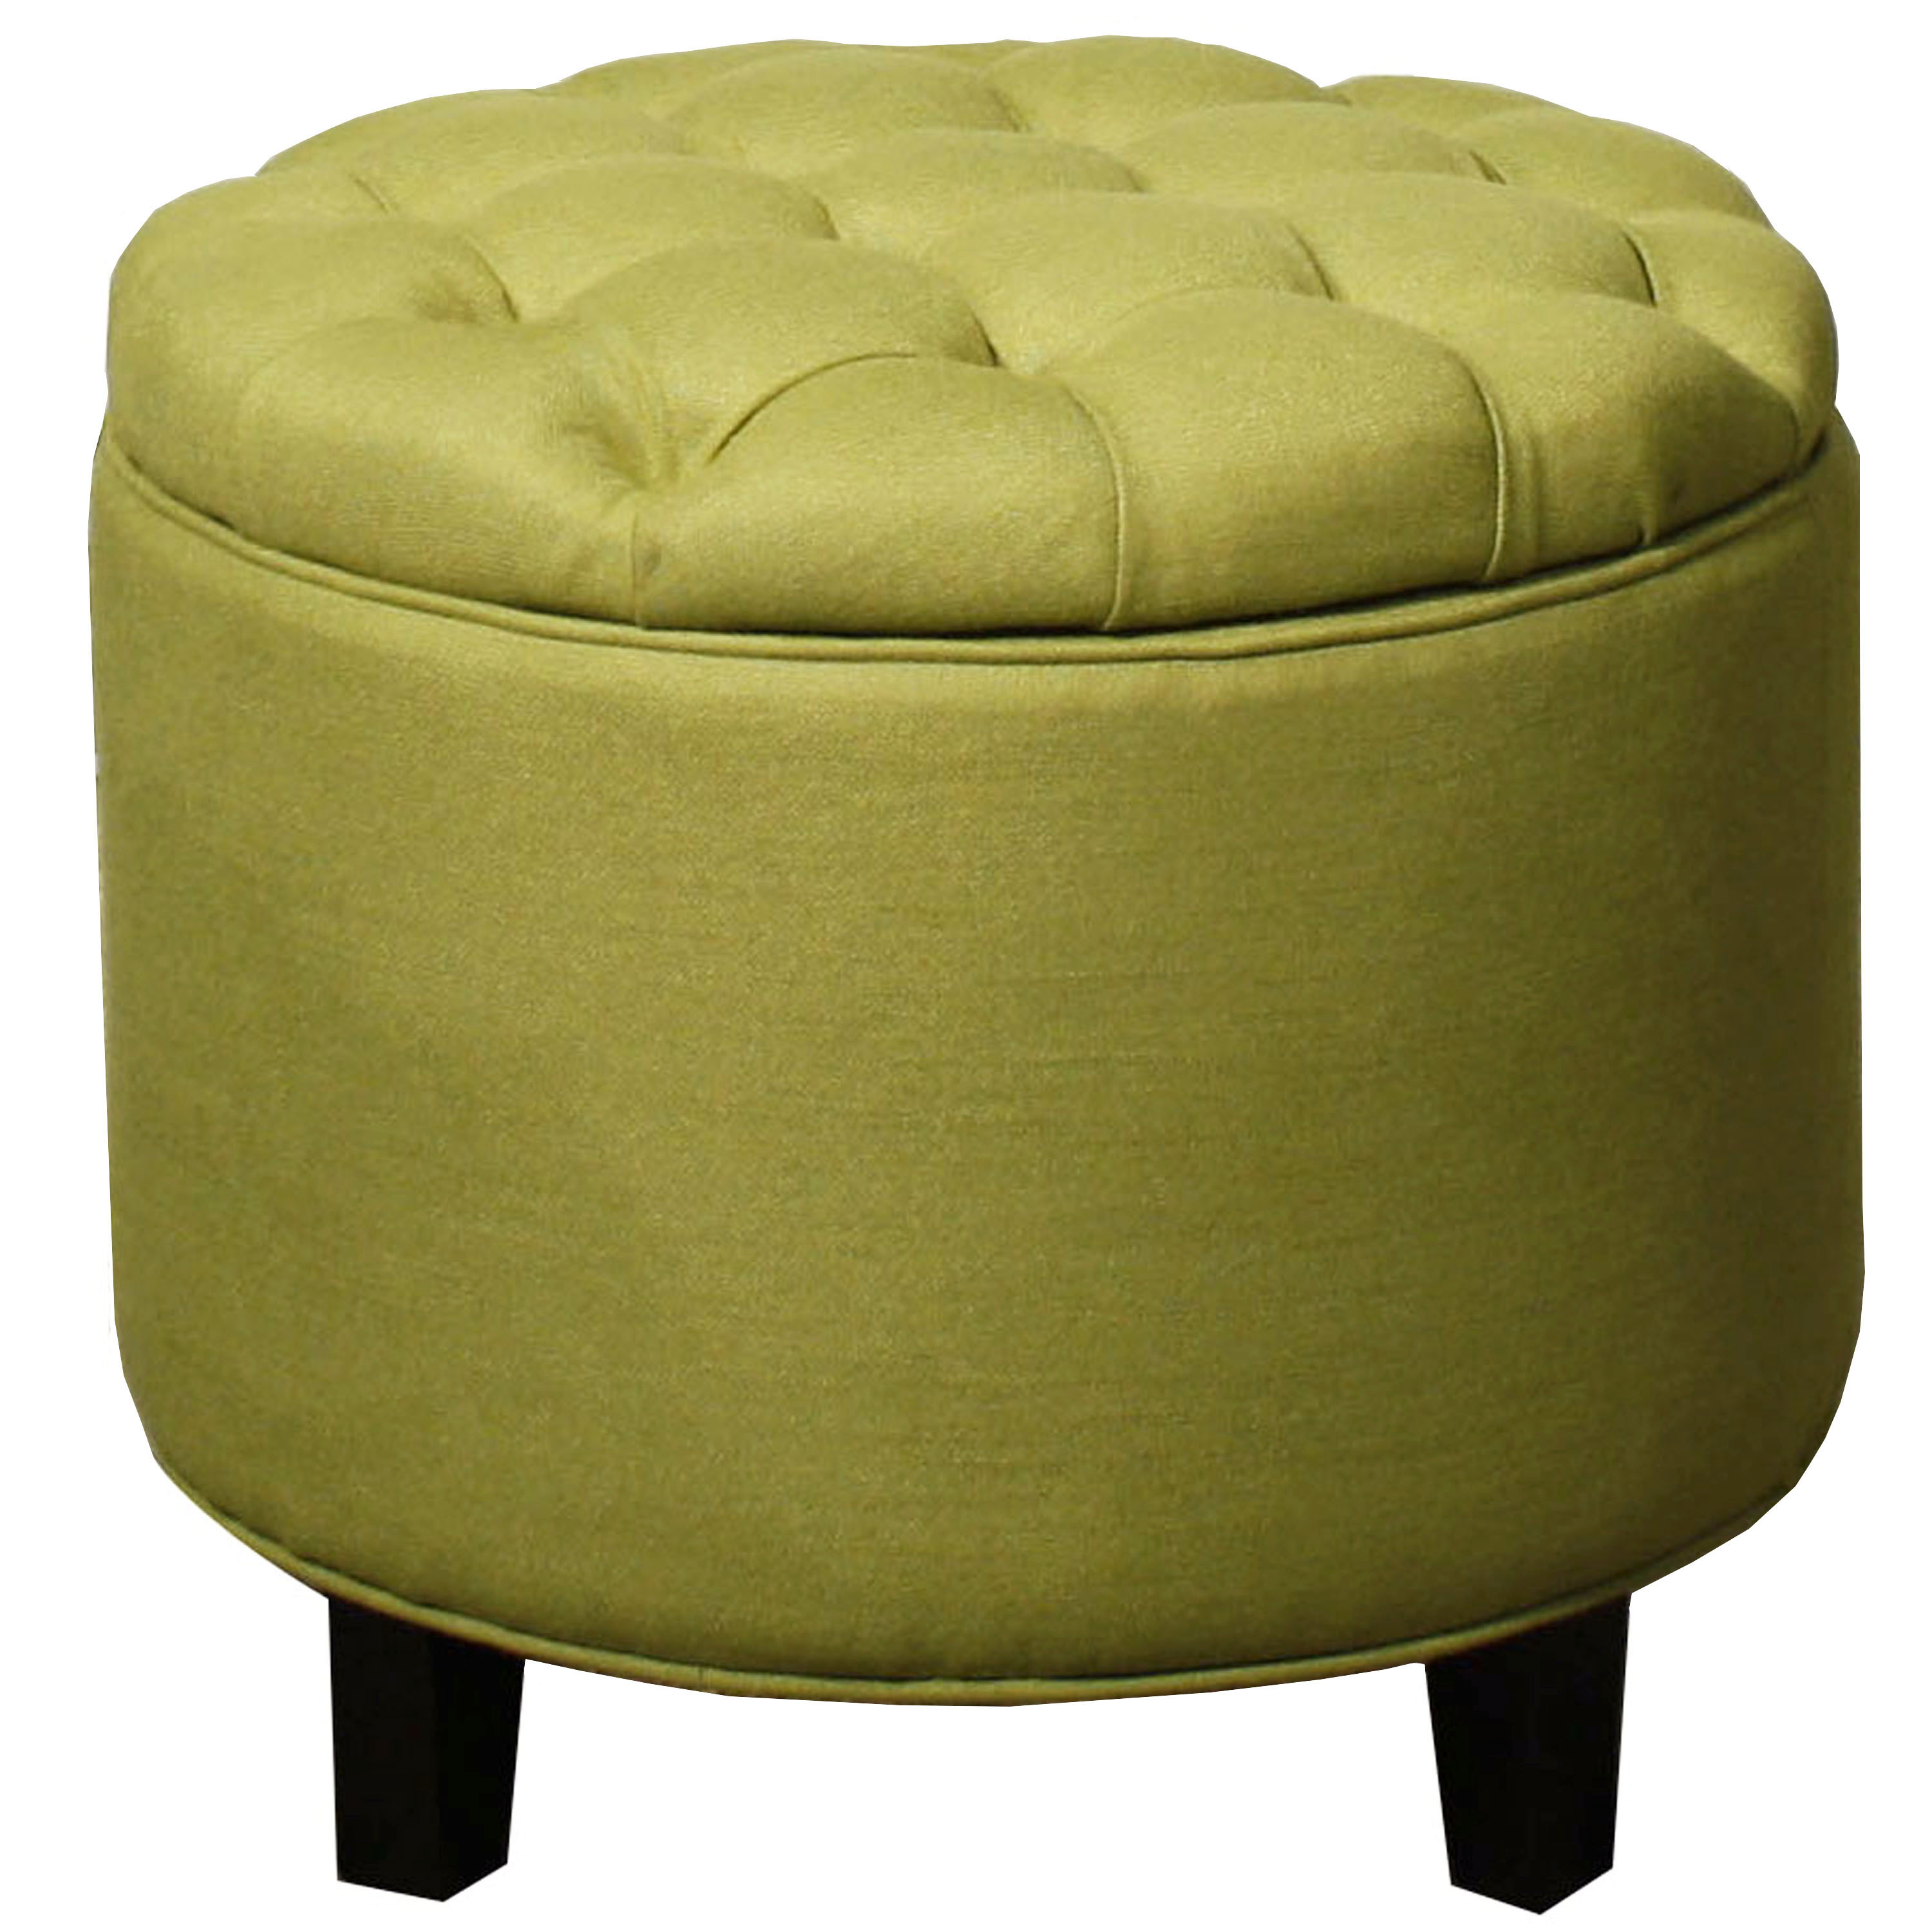 Avery Tufted Round Storage Ottoman, Multiple Colors